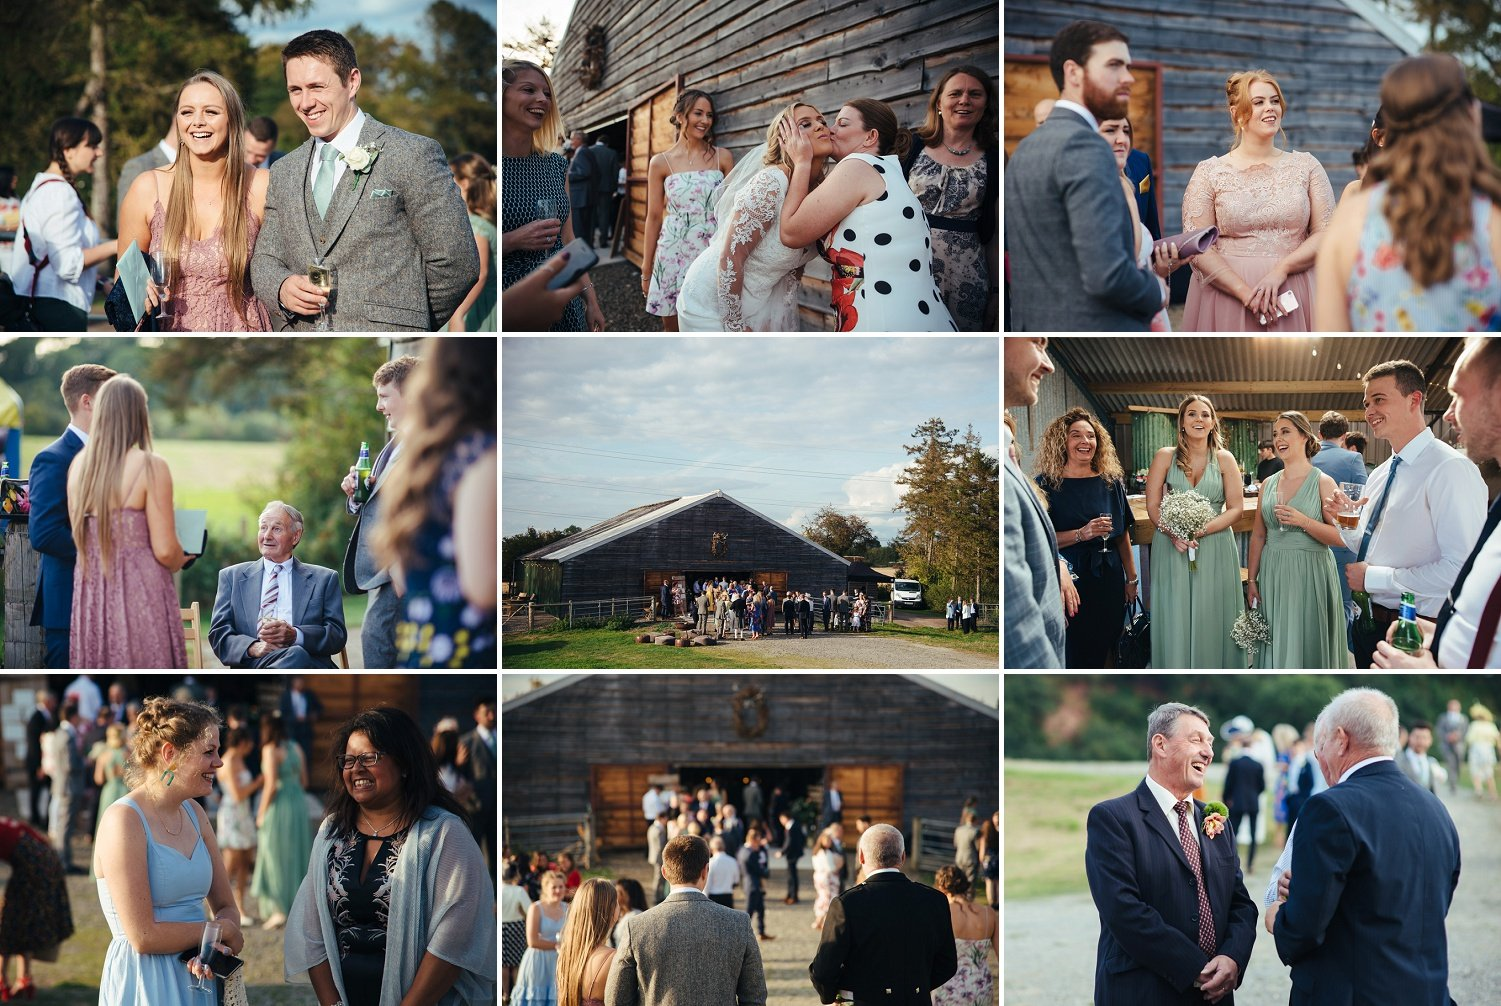 Guests at a Barn wedding at Redbank in Herefordshire